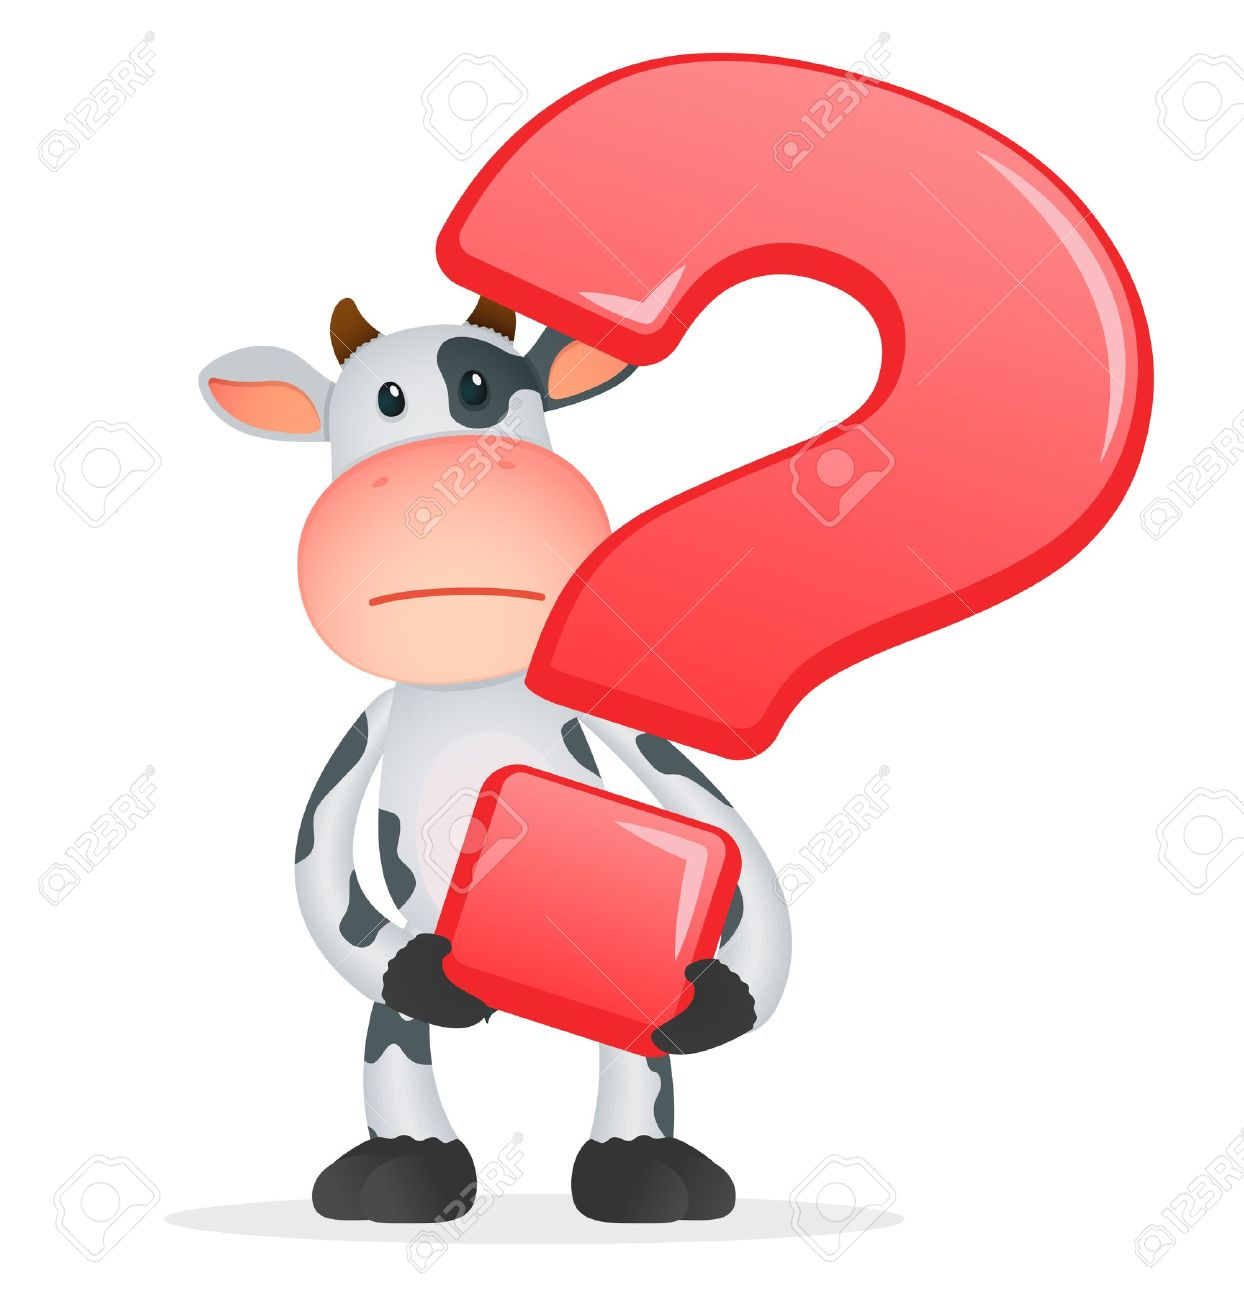 Pics photos clip art cartoon scientist with question mark stock - Asking Funny Cartoon Cow Illustration